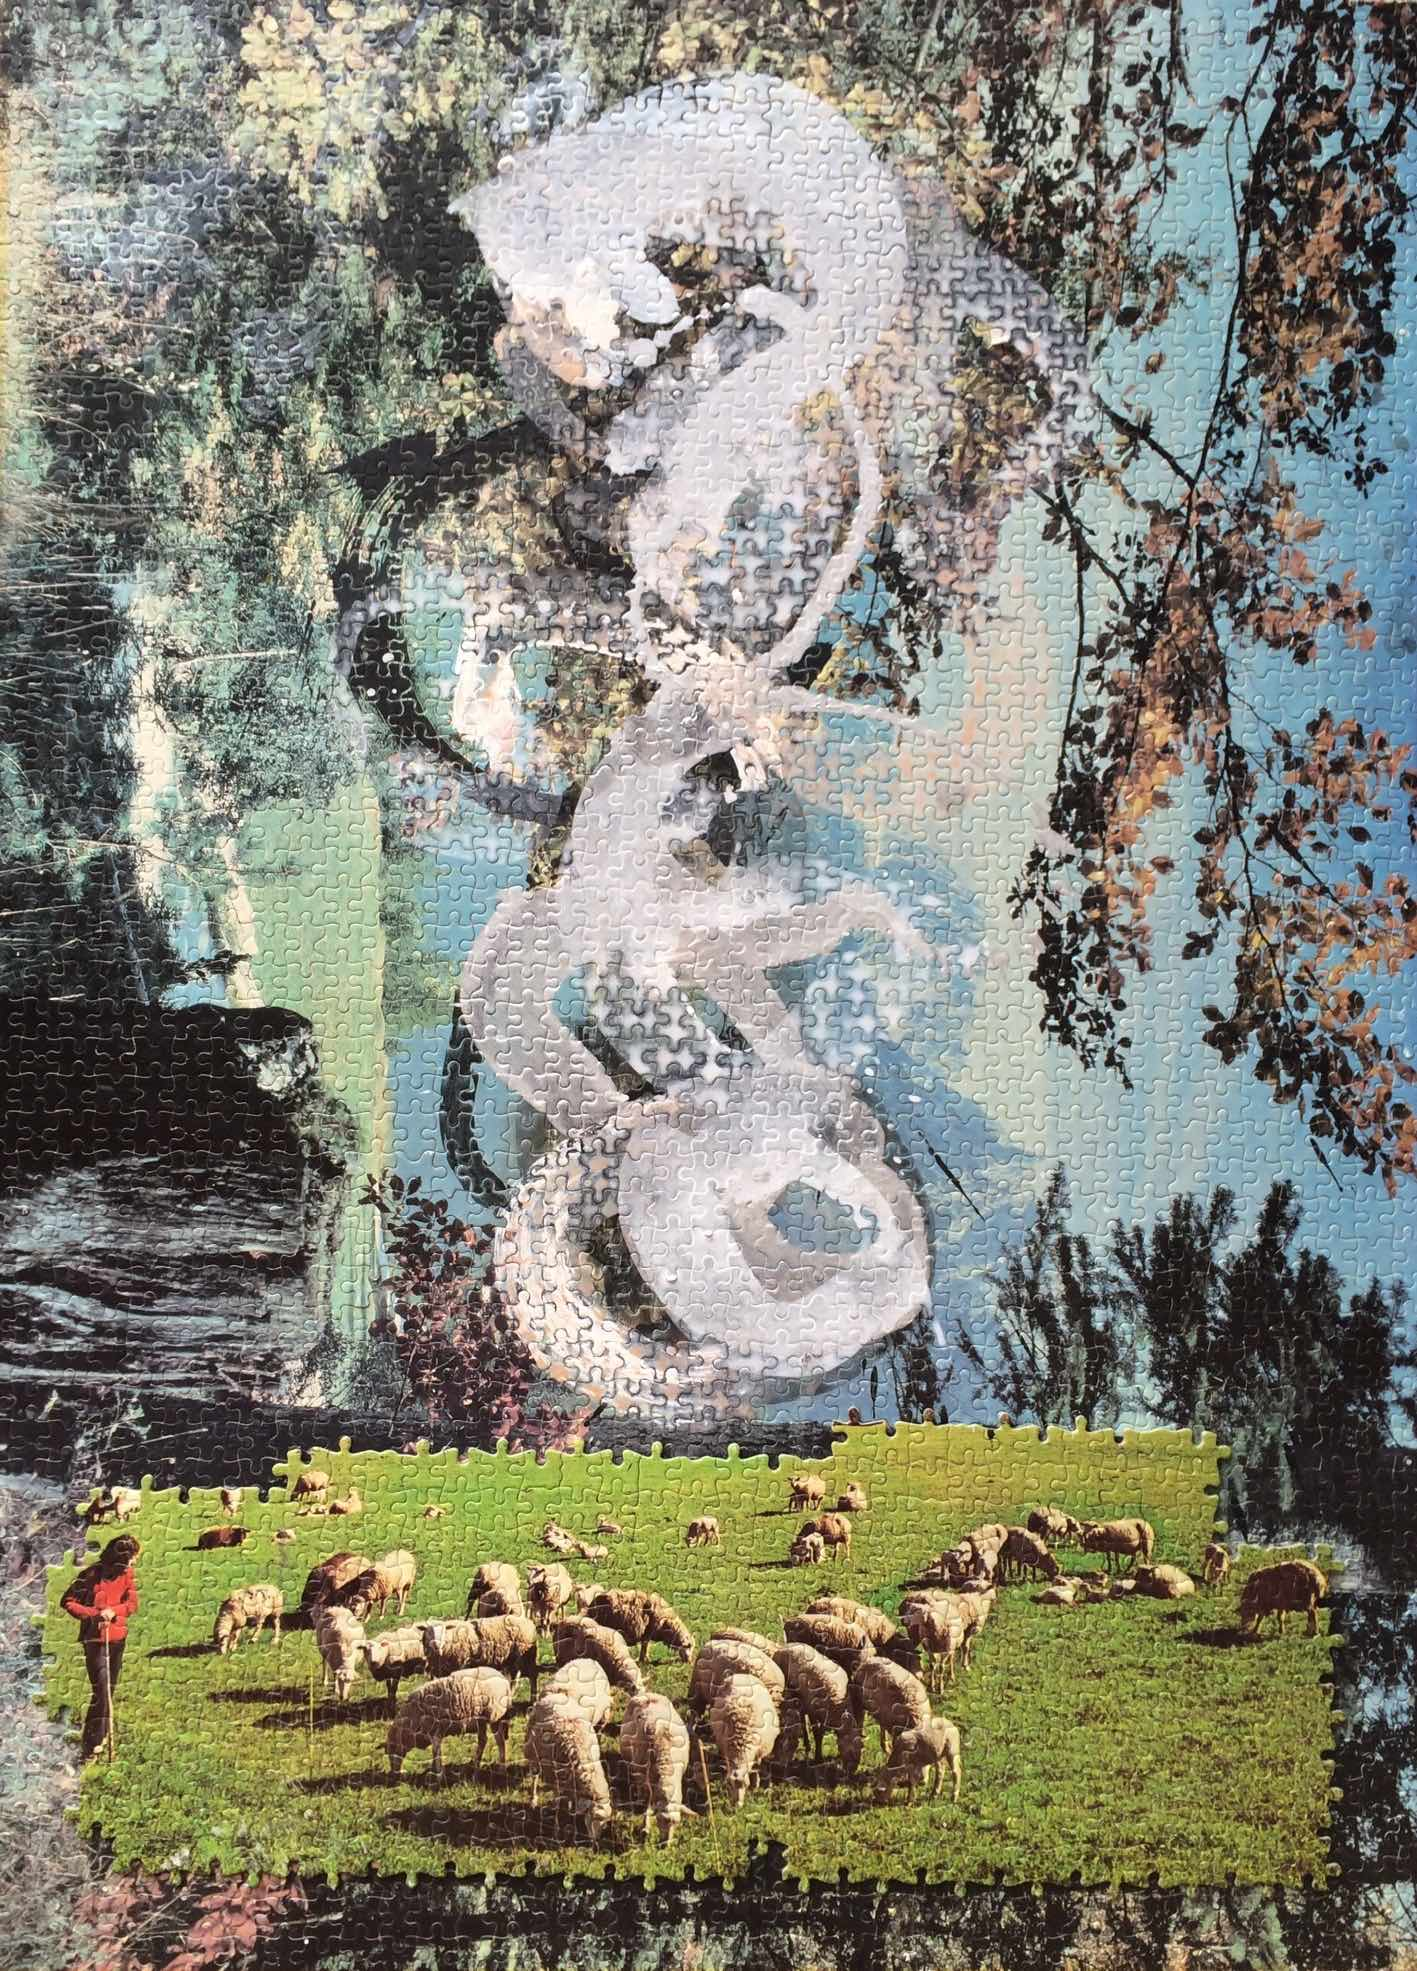 Untitled with Sheep 2007-2011, acrylic and jigsaw collage on jigsaw panel, 93x68 cm  Copyright © Tennyson Woodbridge, 1963 to present. All appropriation rights reserved.